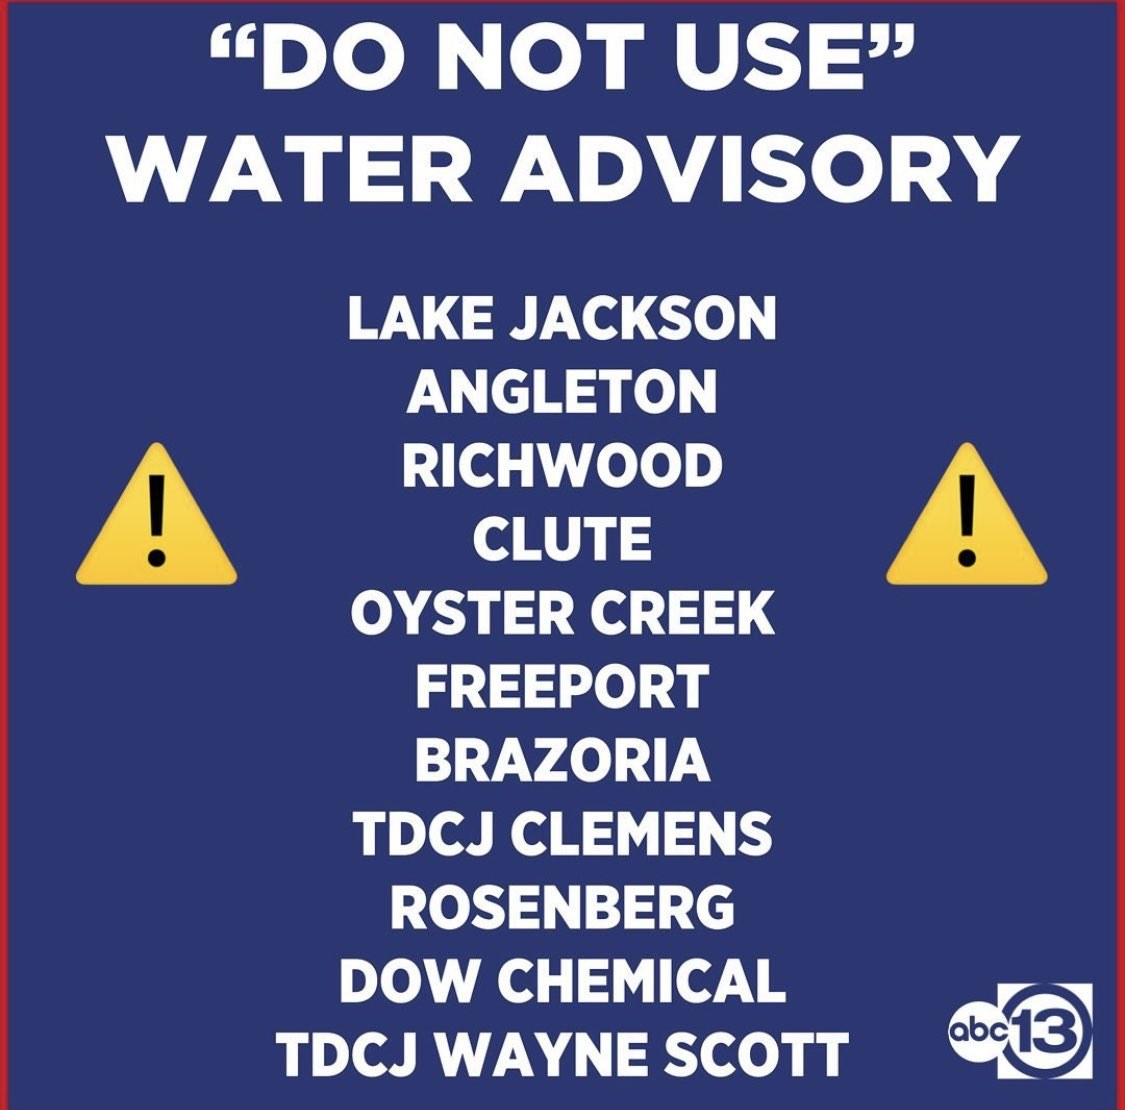 ⚠️WATER ADVISORY⚠️ A brain-eating amoeba was found in the Brazosport Water Supply, prompting a do-not-use advisory for several communities. https://t.co/H1Pi6n7cWO https://t.co/MbRlPsBNKP